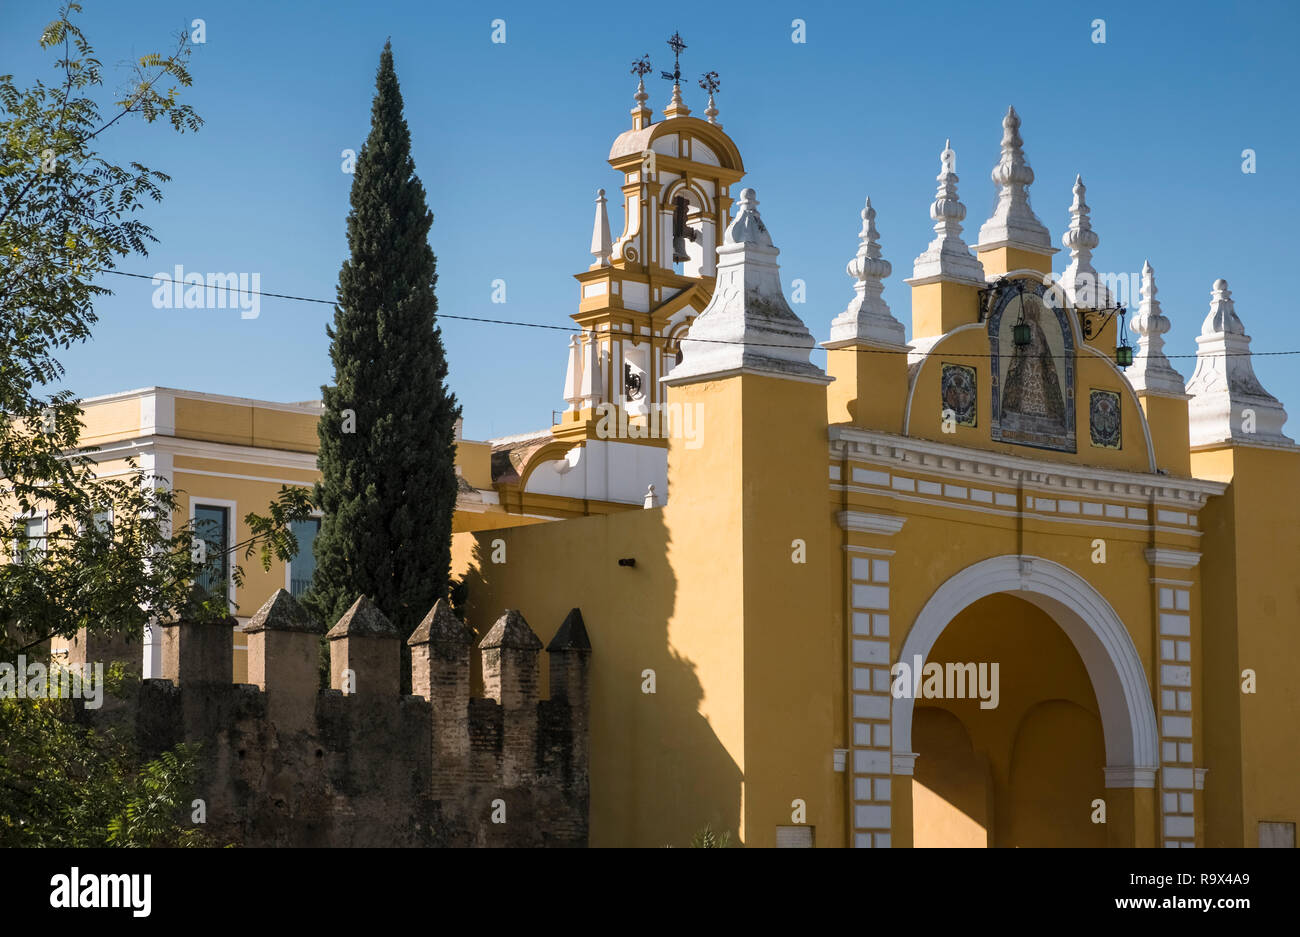 The Macarena Gate, part of the historic city walls, and a working class barrio district in the north eastern region of Seville, Spain. Stock Photo